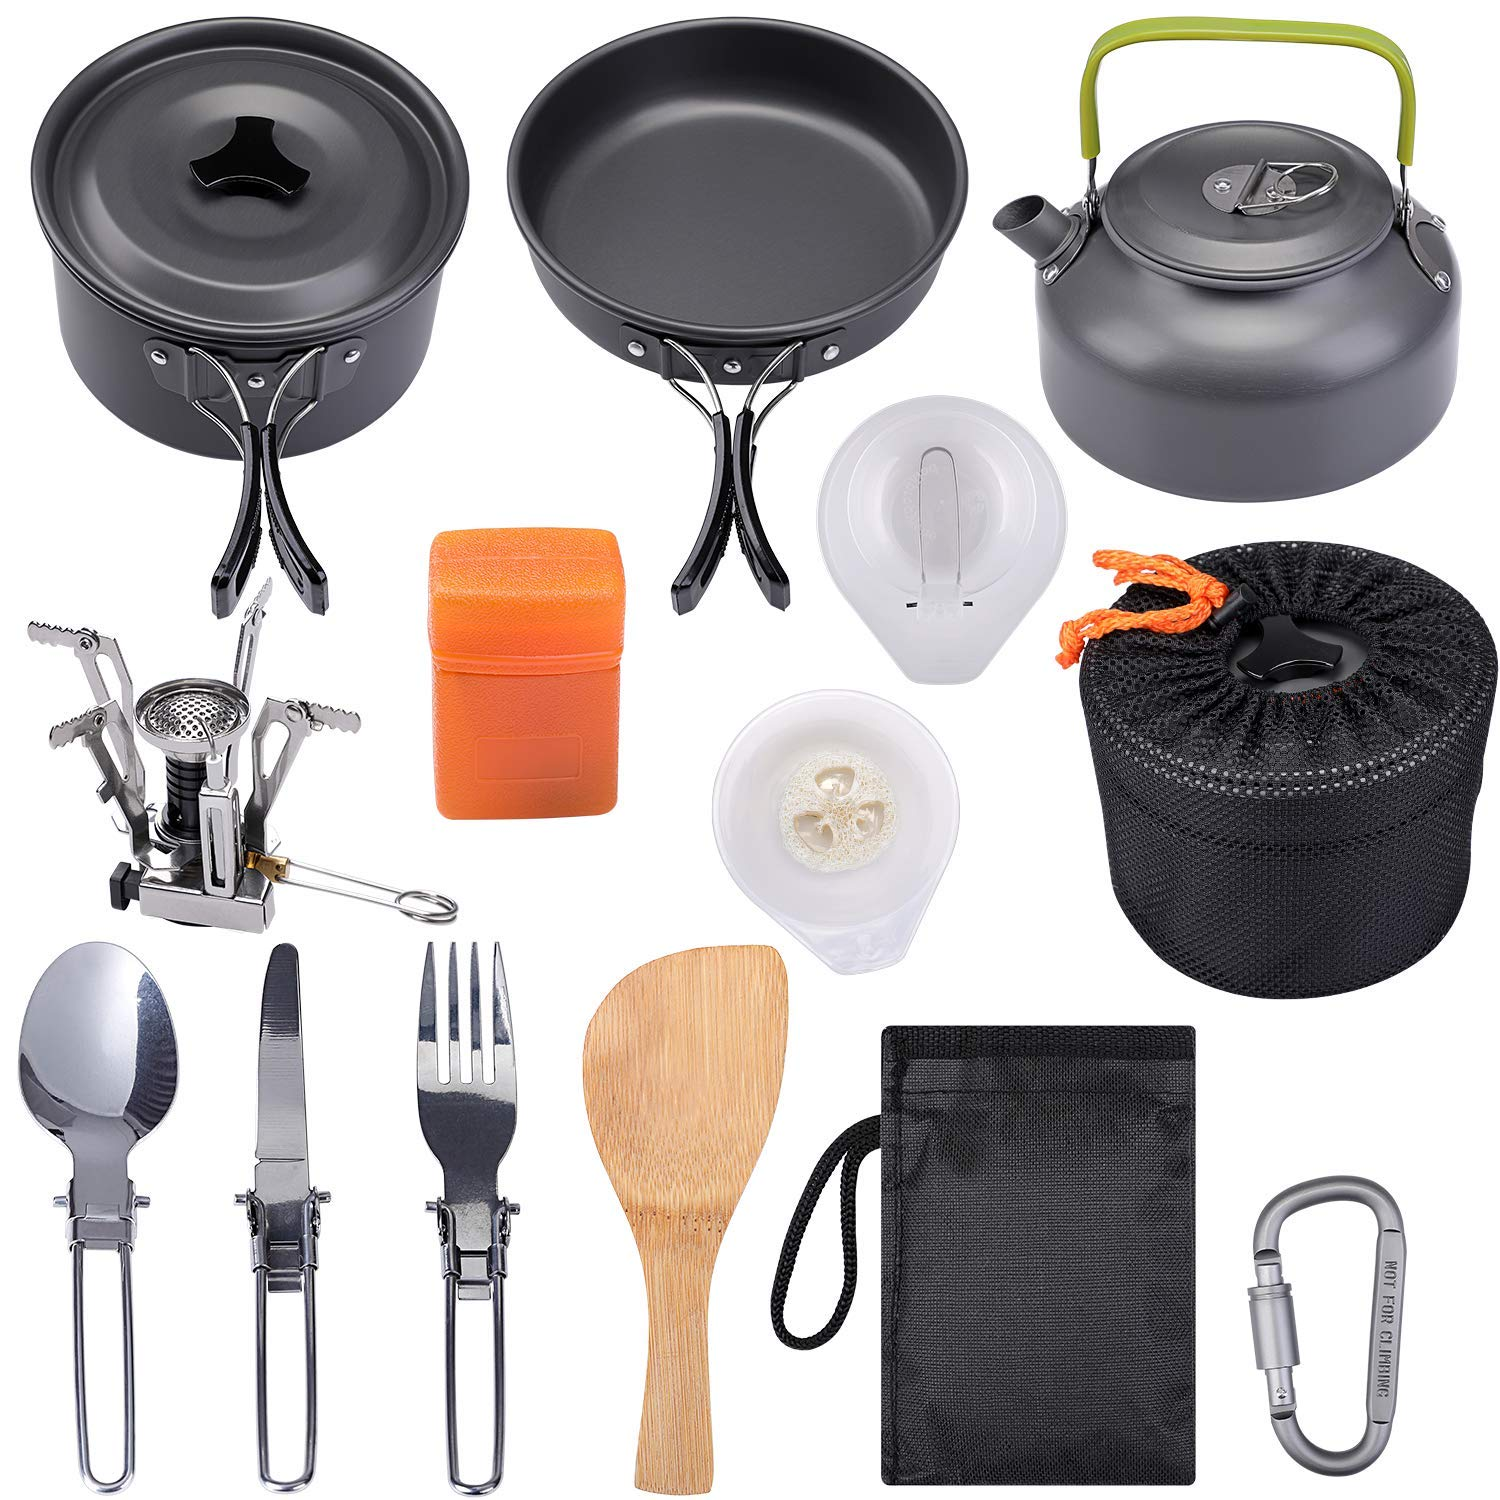 G4Free Camping Cookware Mess Kit, Lightweight Pot Pan Kettle Fork Knife Spoon Kit for Backpacking, Outdoor Camping Hiking and Picnic(15pcs Set) by G4Free